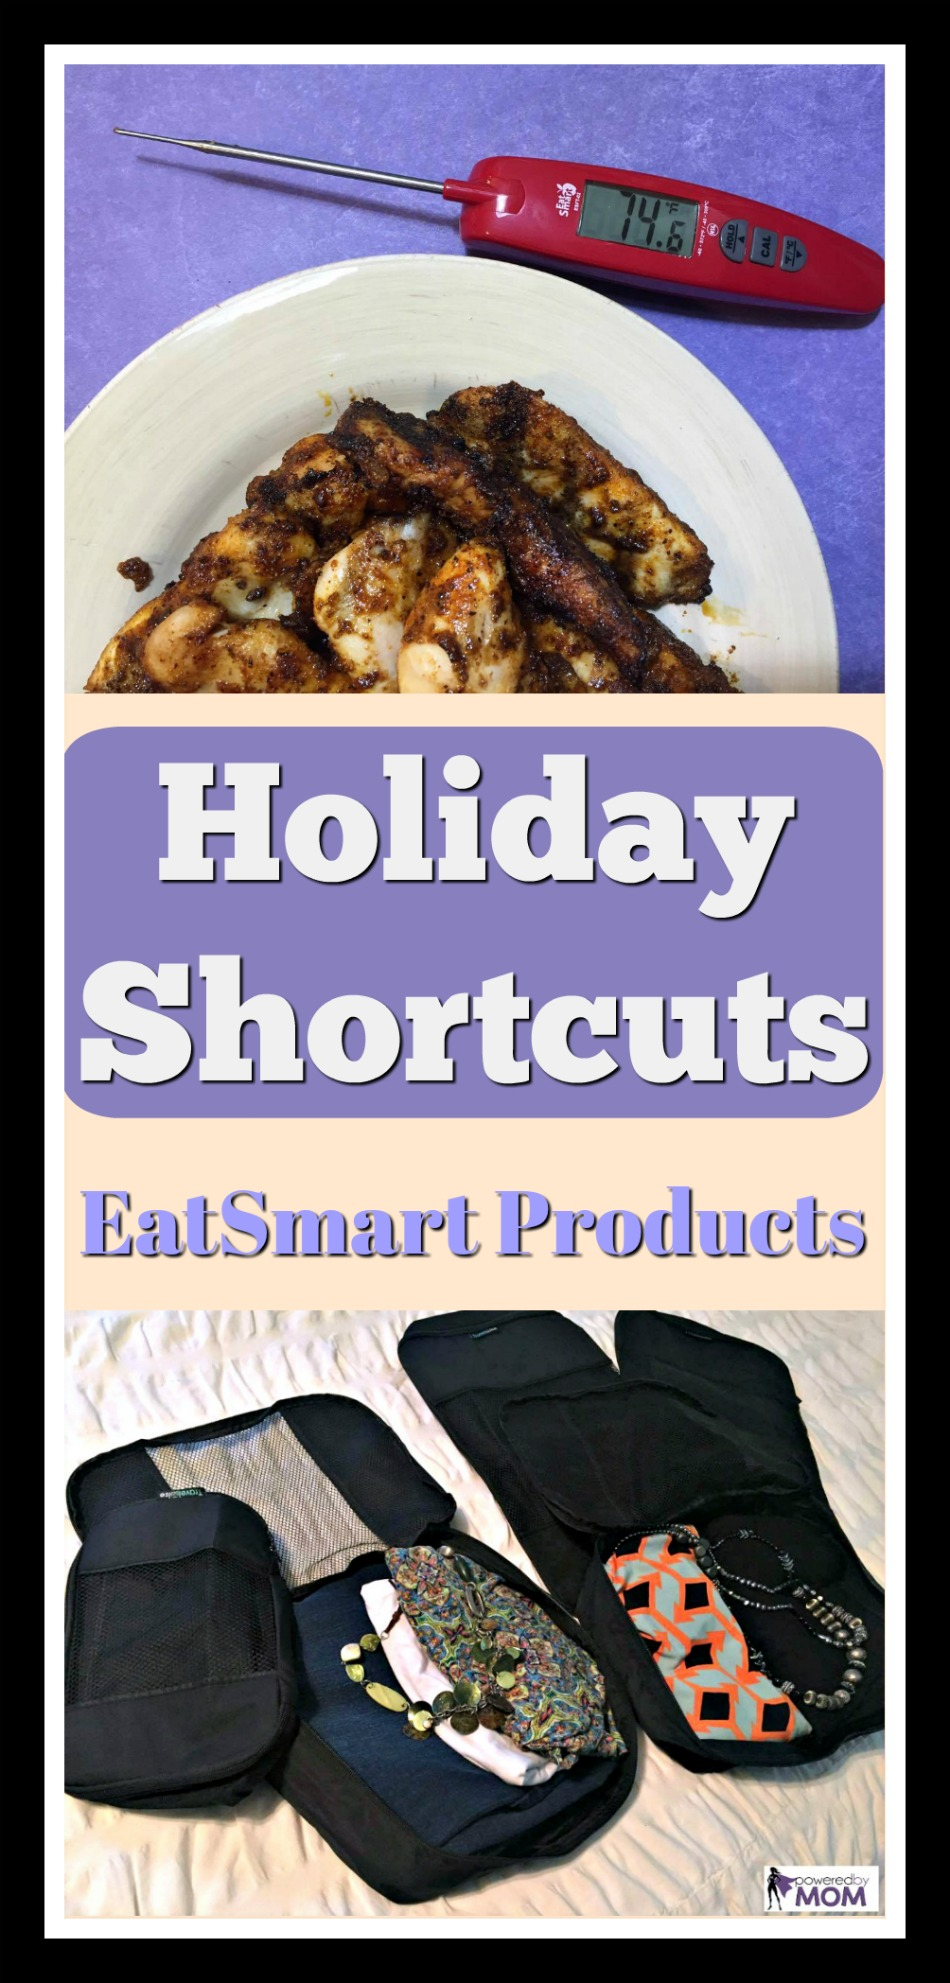 Holiday Shortcuts